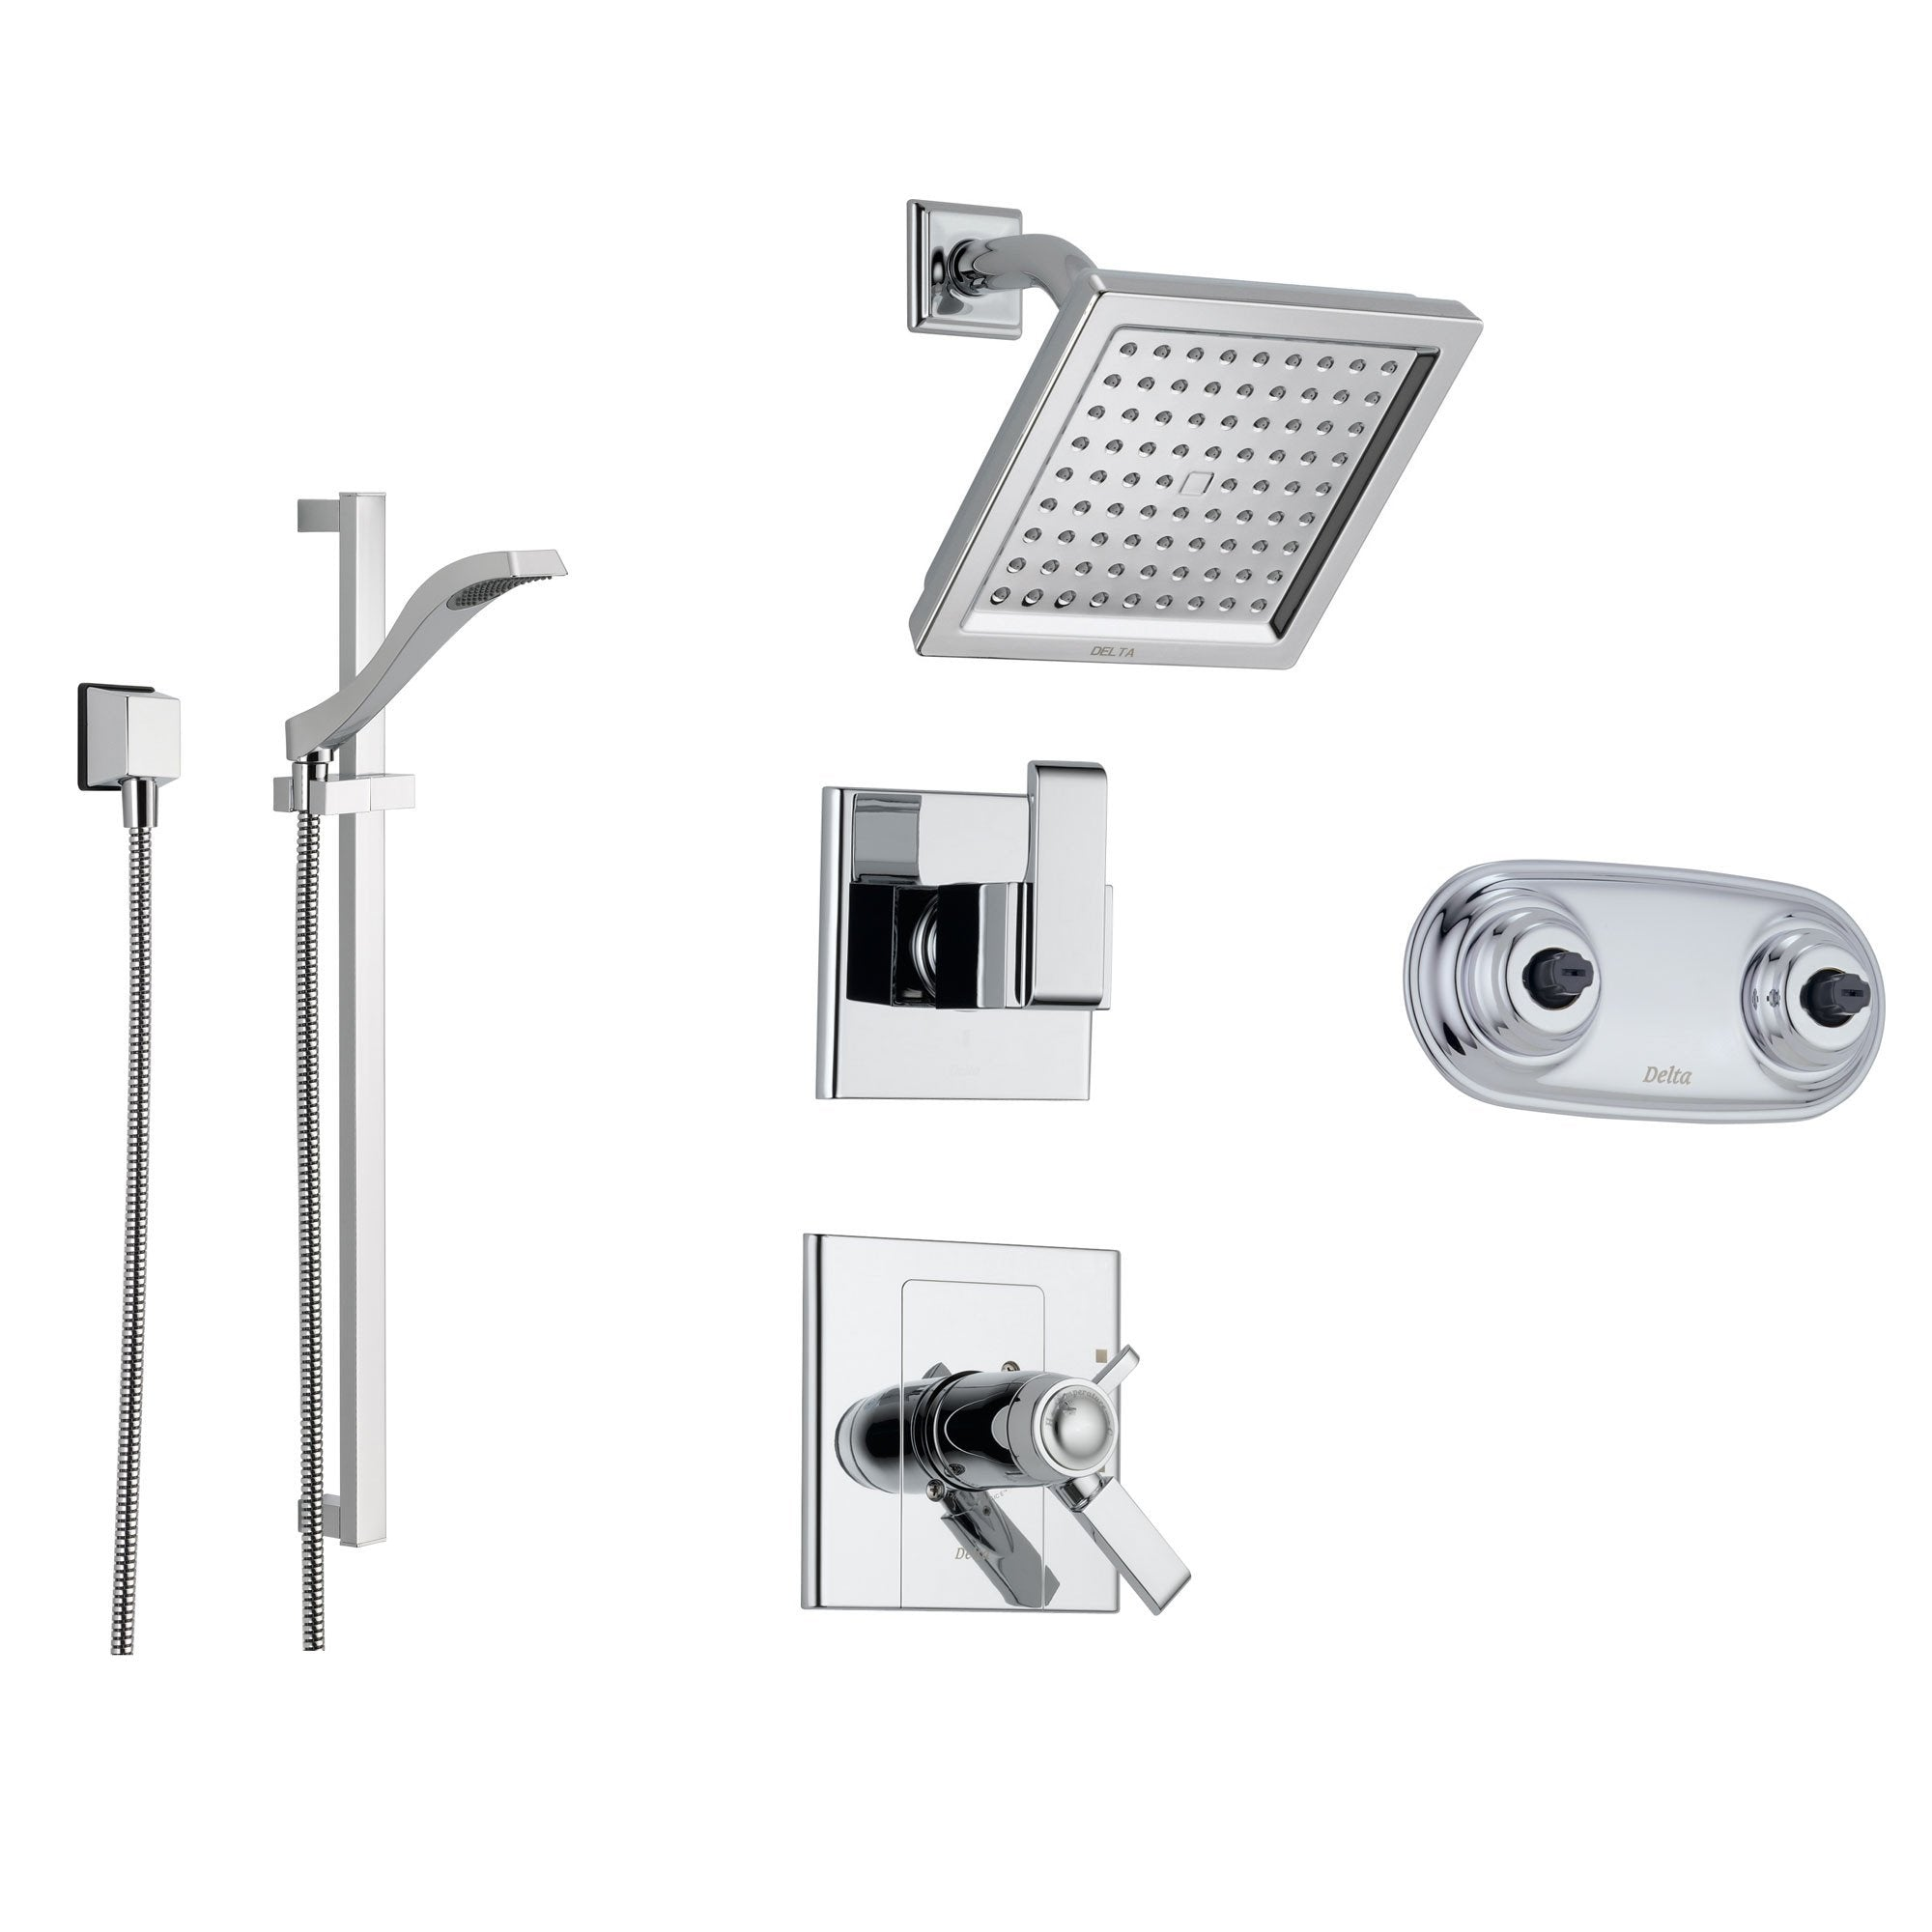 Delta Arzo Chrome Shower System with Thermostatic Shower Handle, 6-setting Diverter, Modern Square Showerhead, Handheld Shower, and Dual Body Spray Plate SS17T8693